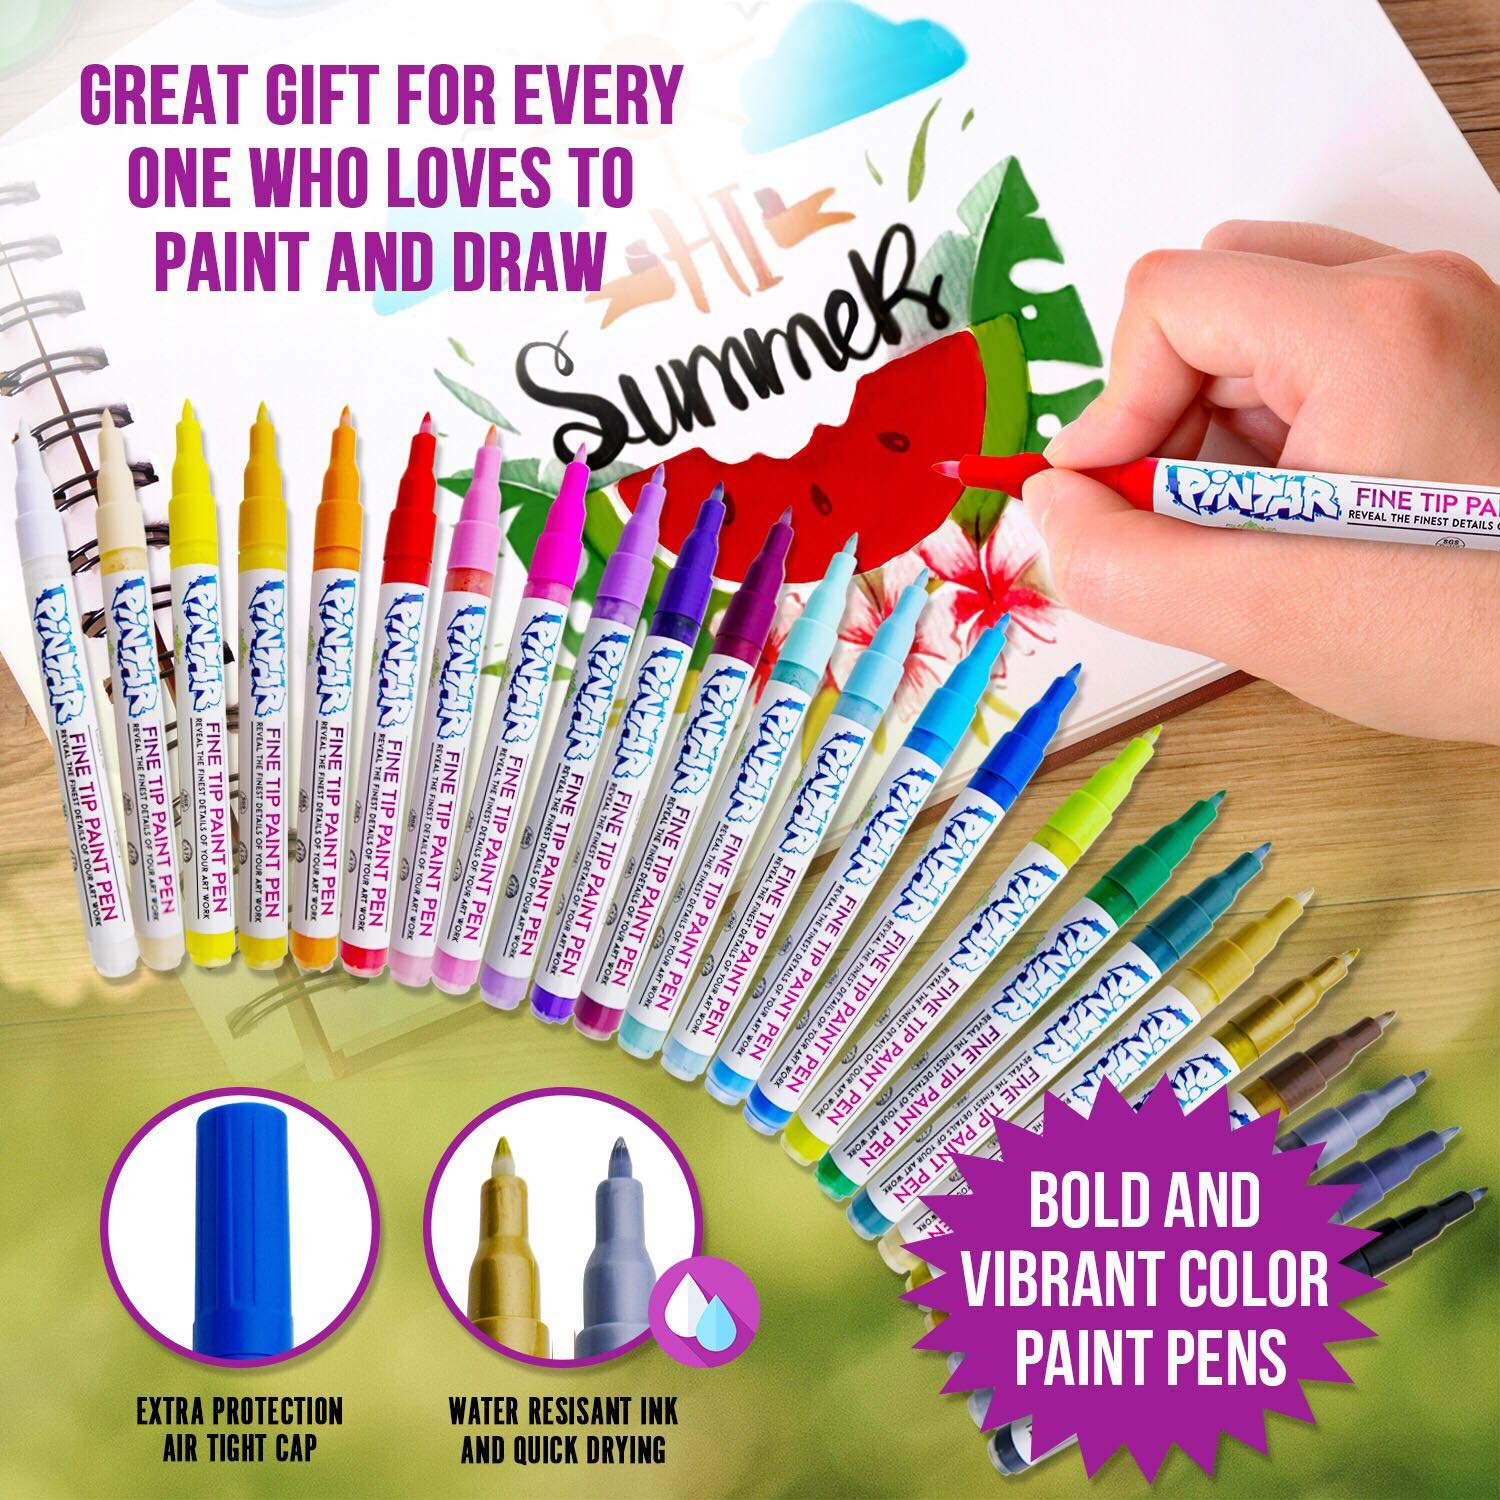 PINTAR - Acrylic Fine Tip Paint Pens For Rock Painting Art - 24 Pack Vibrant Colors for Wood, Glass, Metal and Ceramic - Water Resistant and Quick Drying Ink For Arts & Crafts by PINTAR (Image #5)